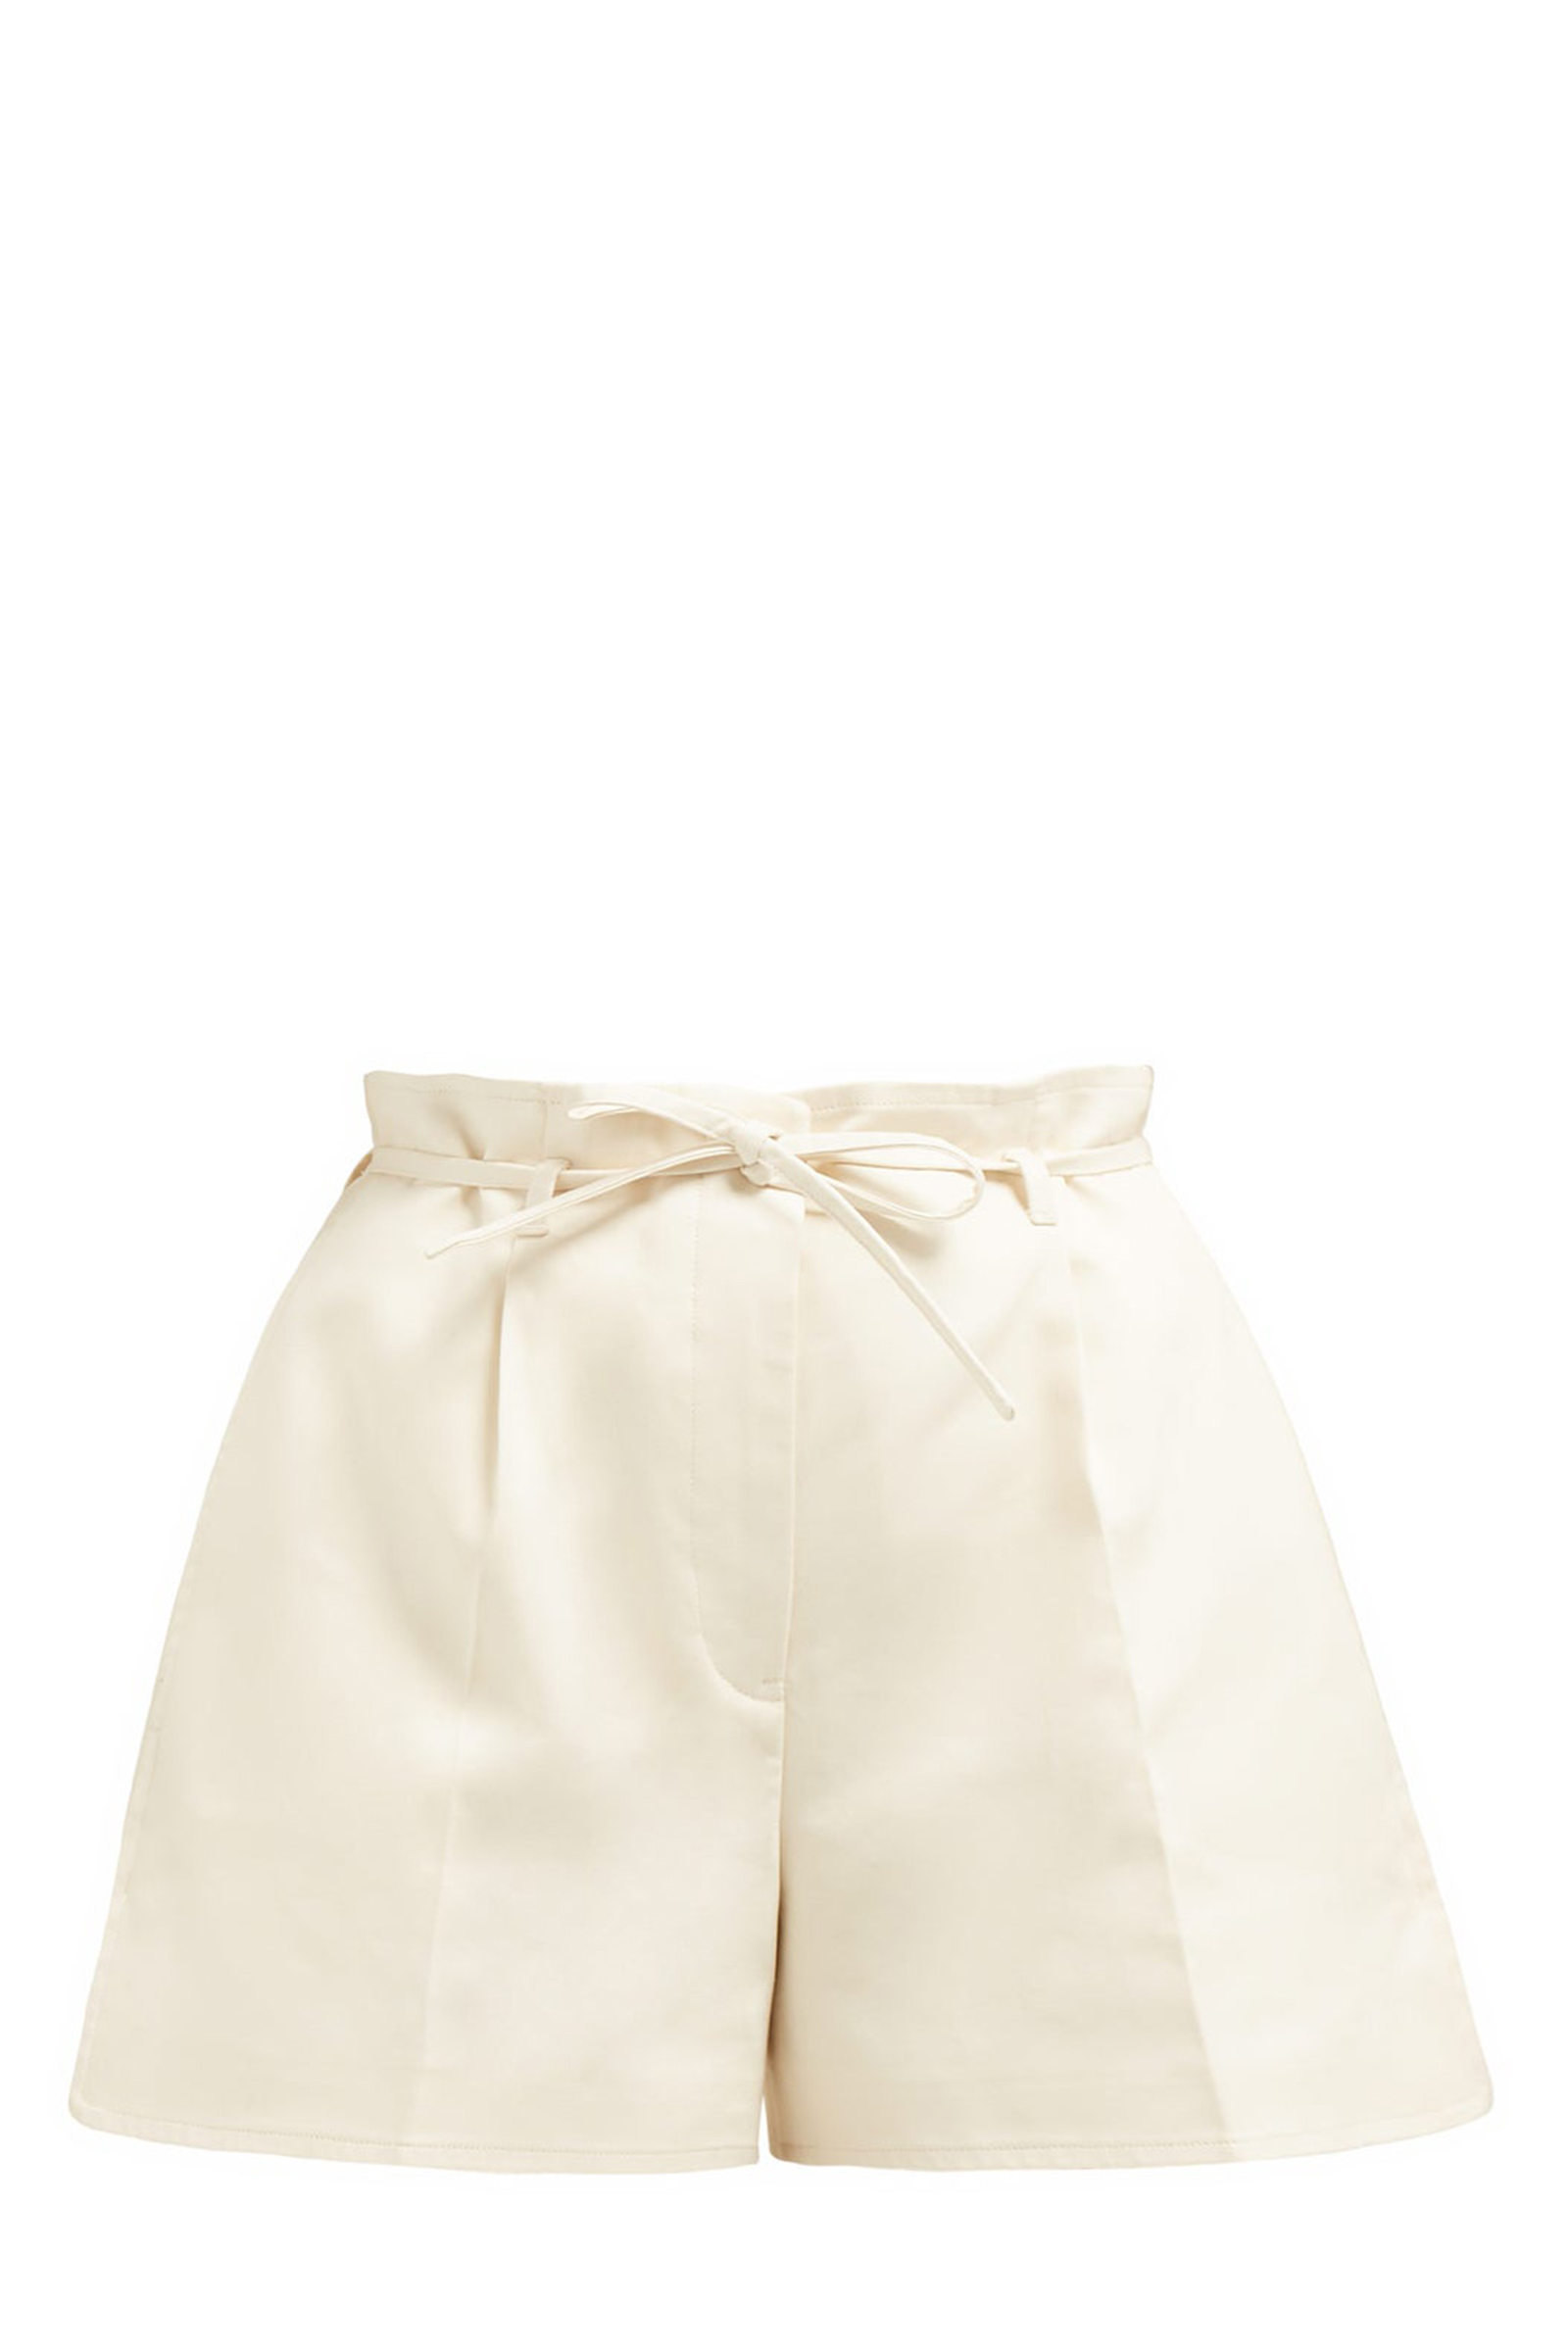 Jil-Sander-High-Rise-Shorts